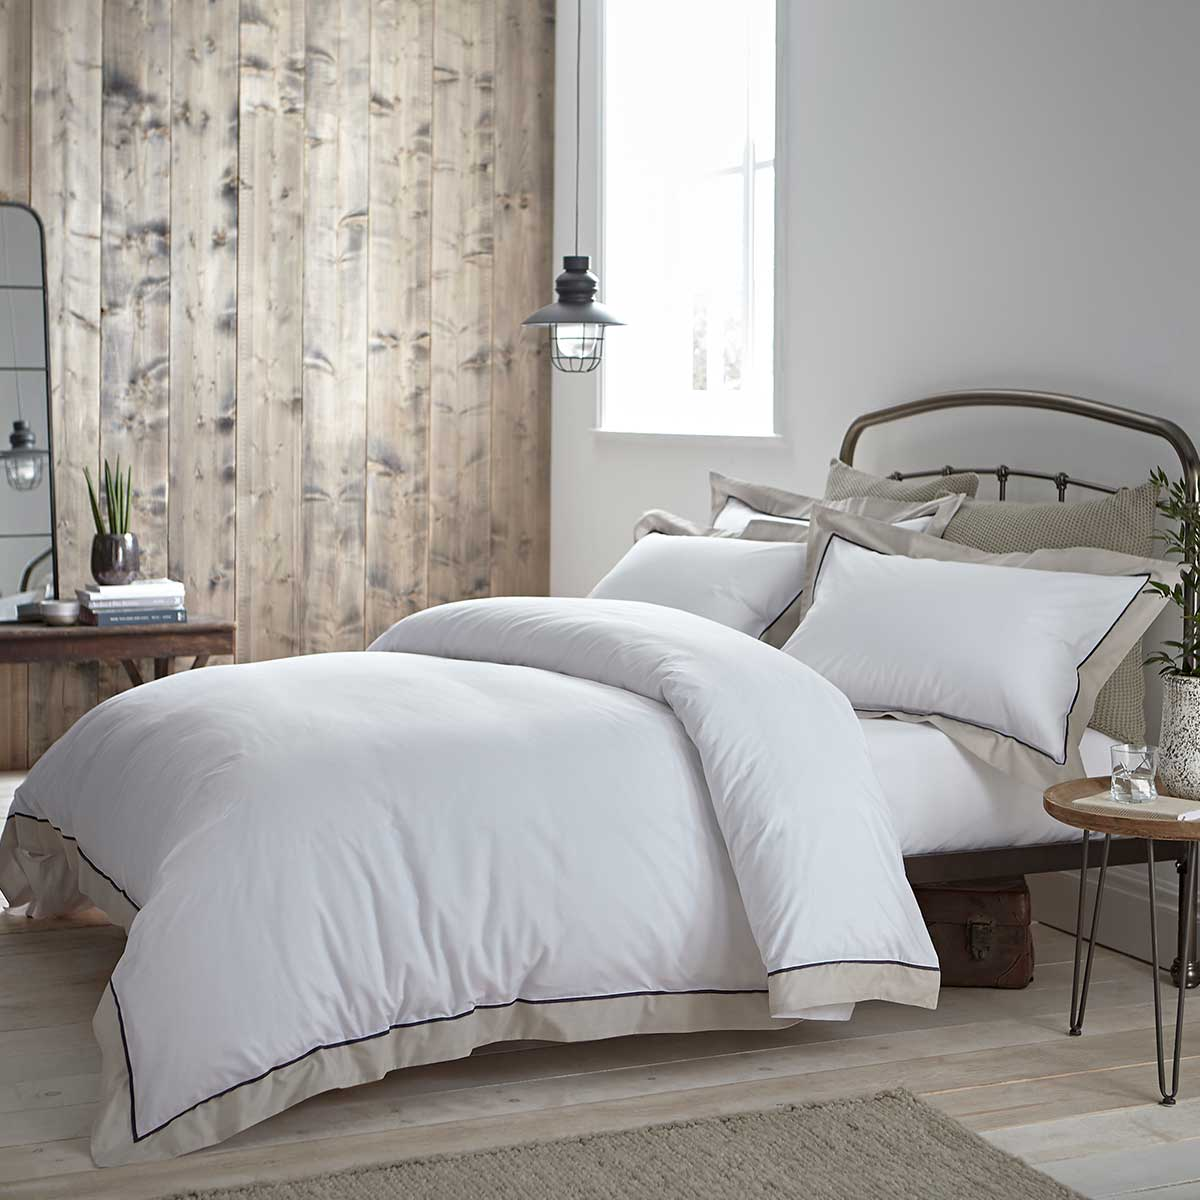 Ways to Sleep Better and Feel Better with Luxury Bedding